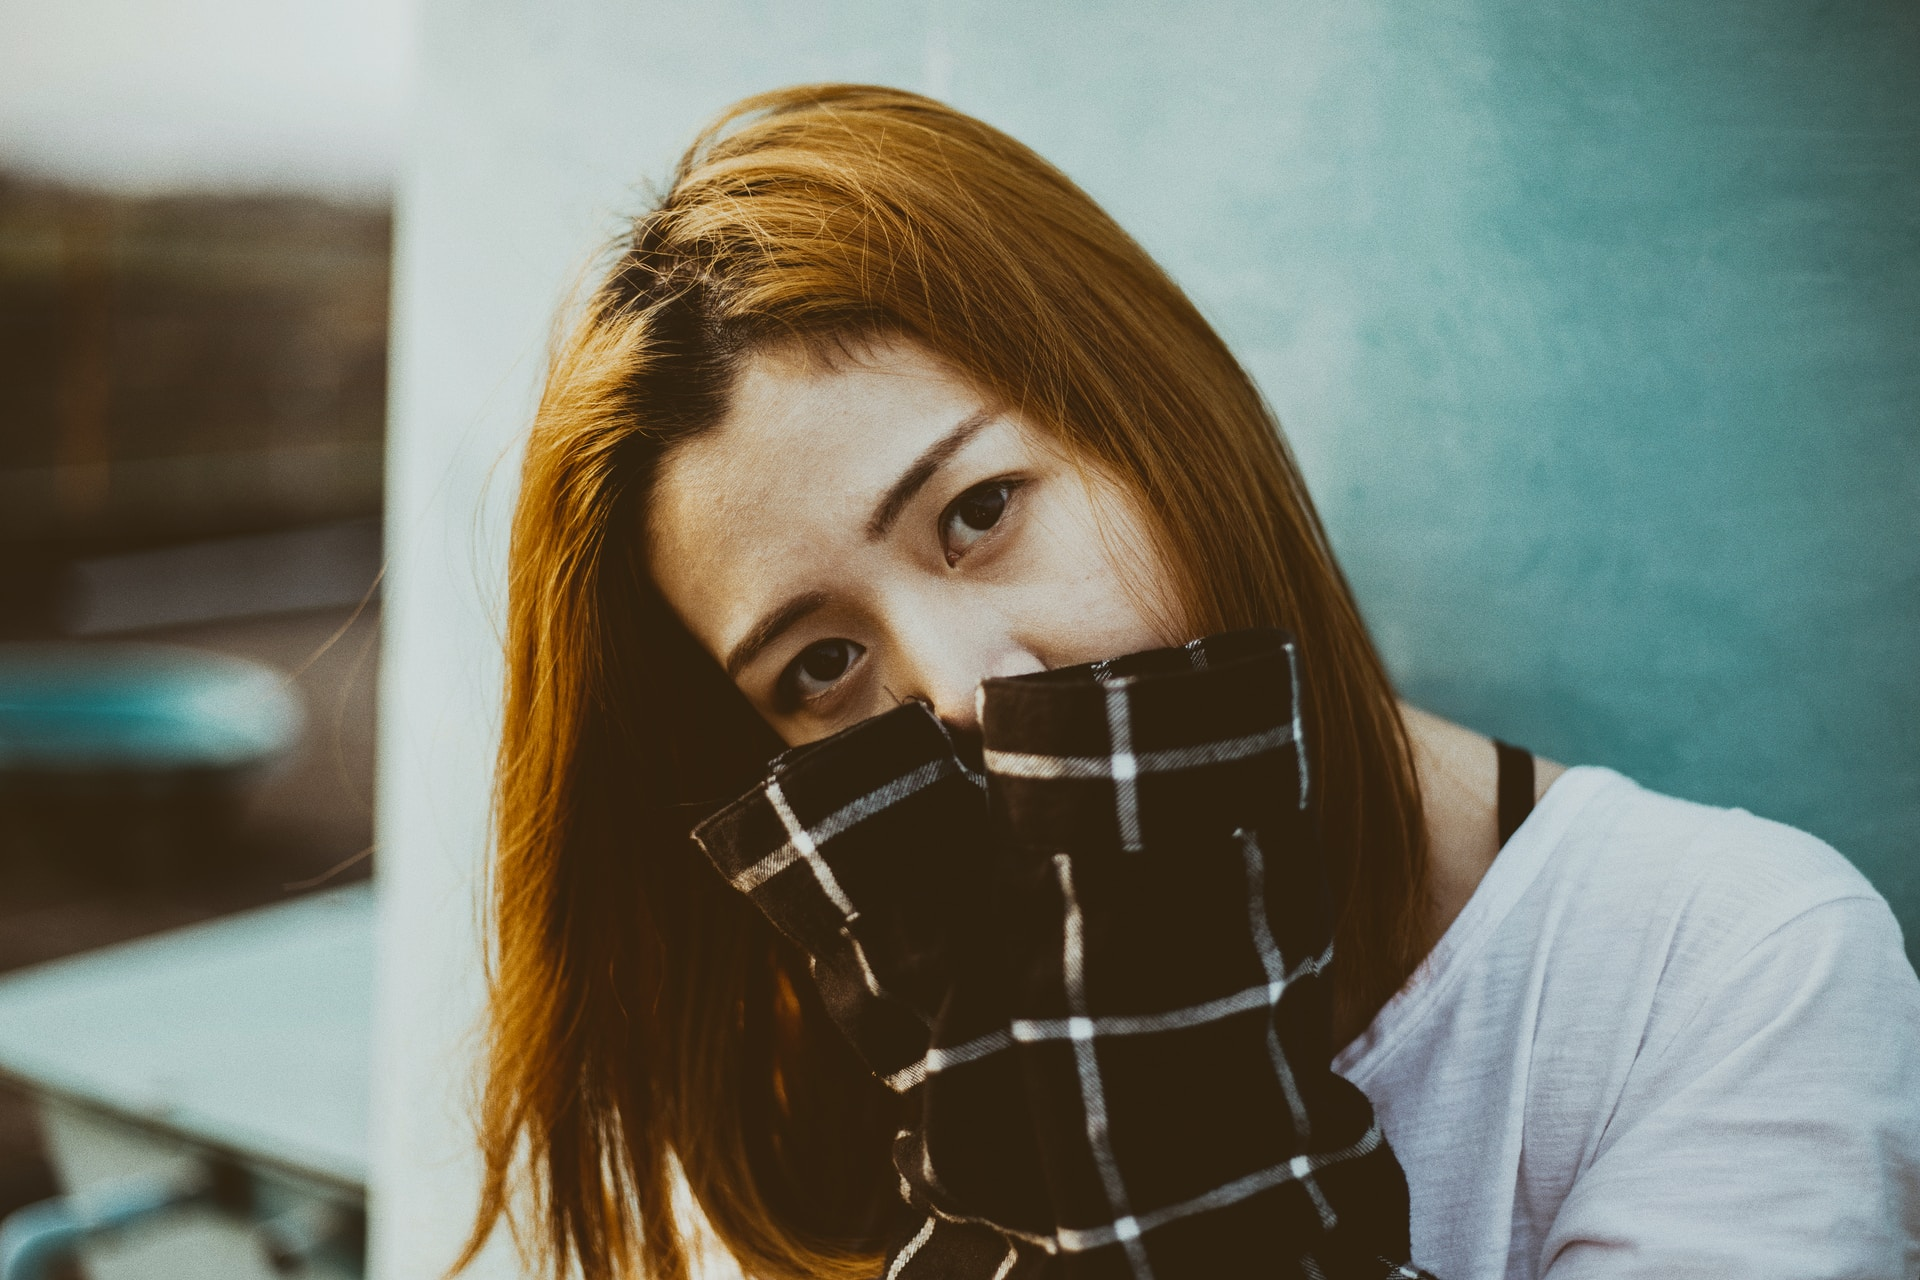 woman hiding her mouth with her hands